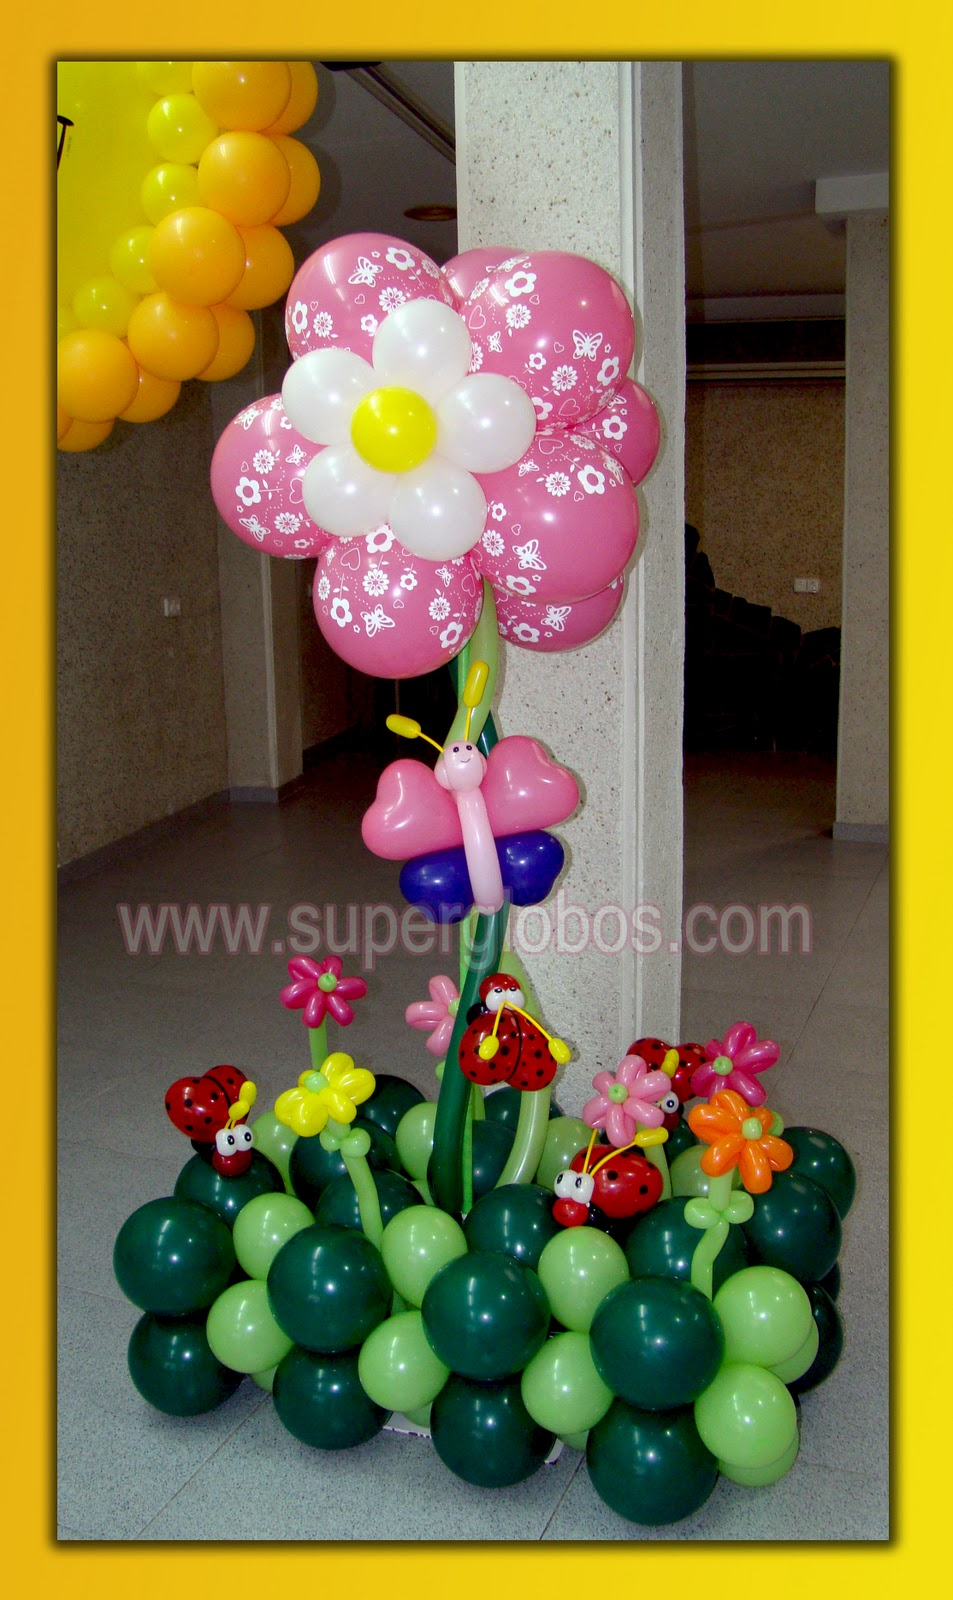 Dise os con globos para fiestas infantiles decoraci n for Decoraciones para decorar